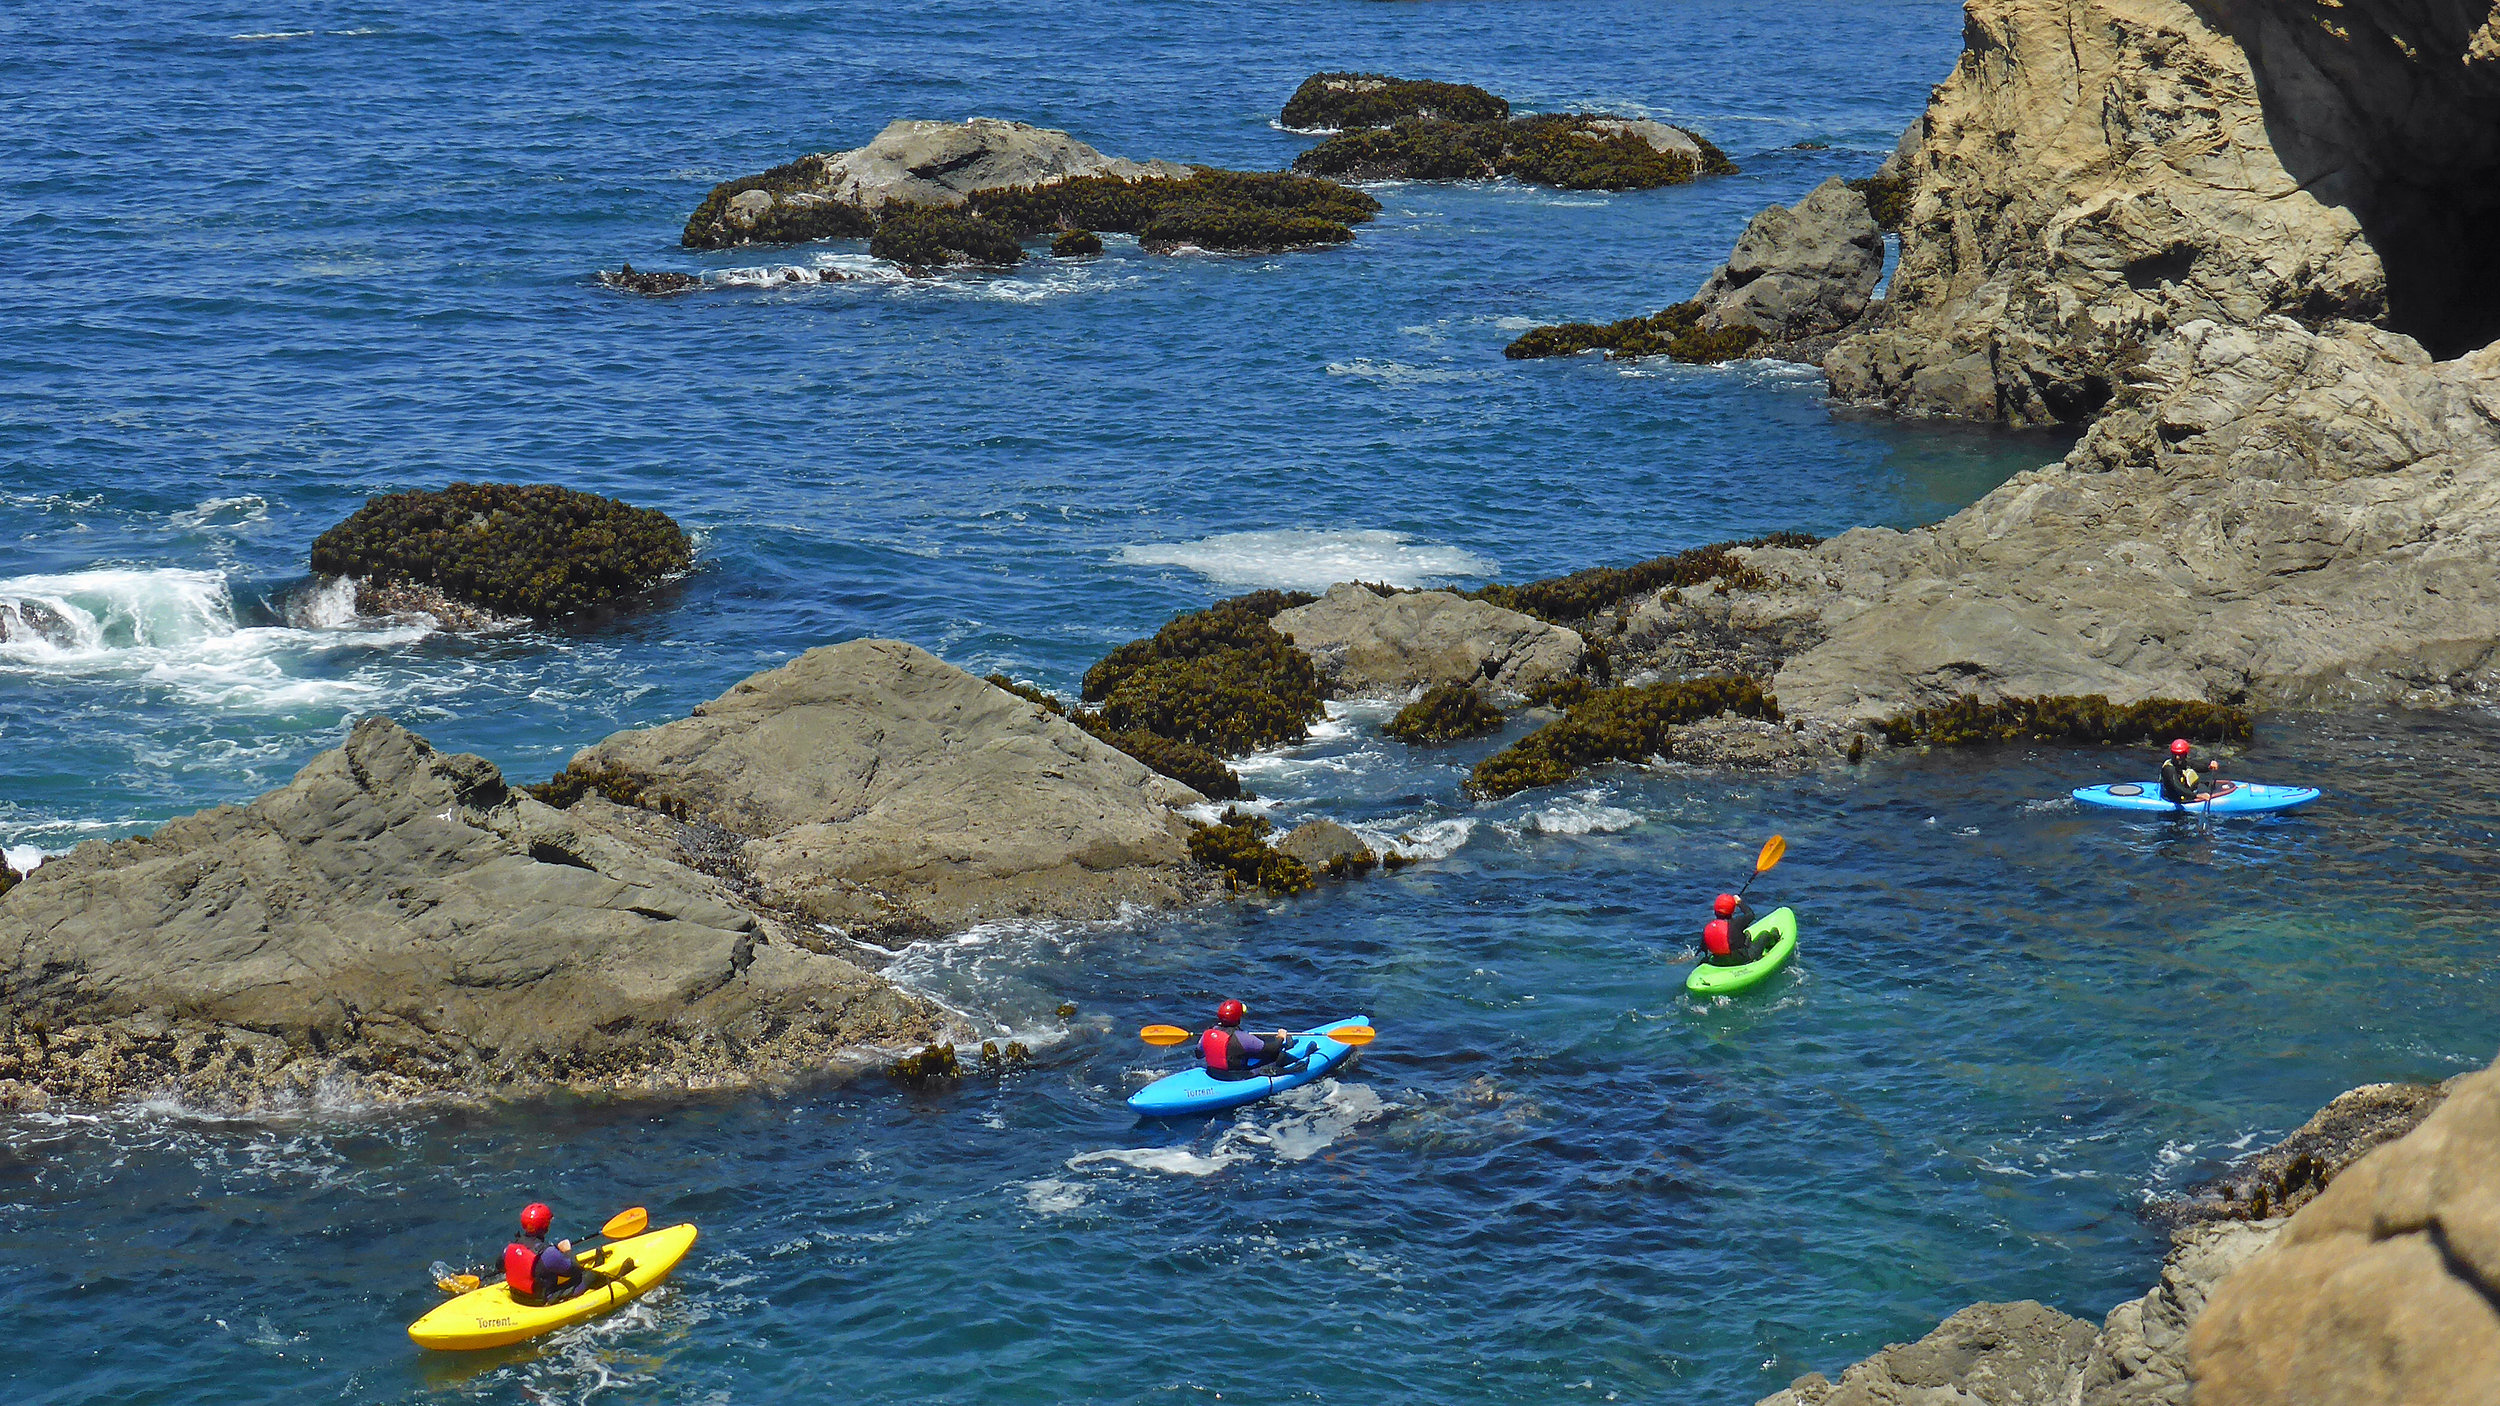 Ocean kayaking on the Mendocino Coast around Noyo Point. Photo by Liquid Fusion Kayaking